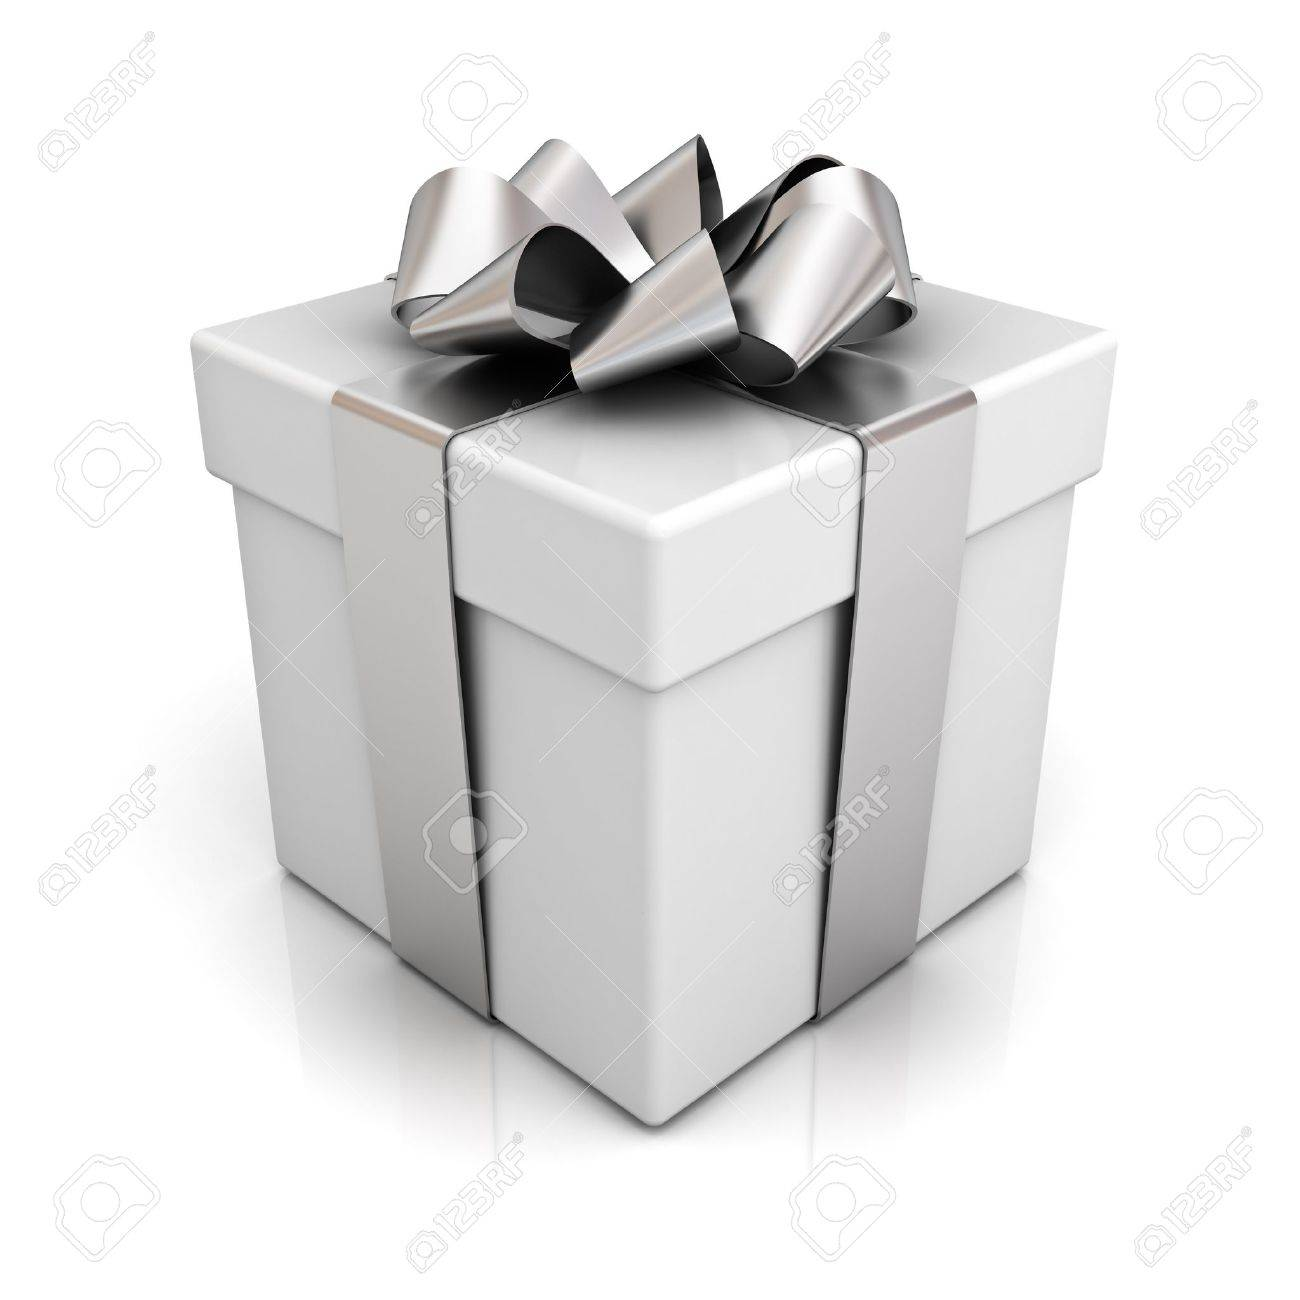 Gift box with silver ribbon bow isolated on white background Stock Photo - 14821498